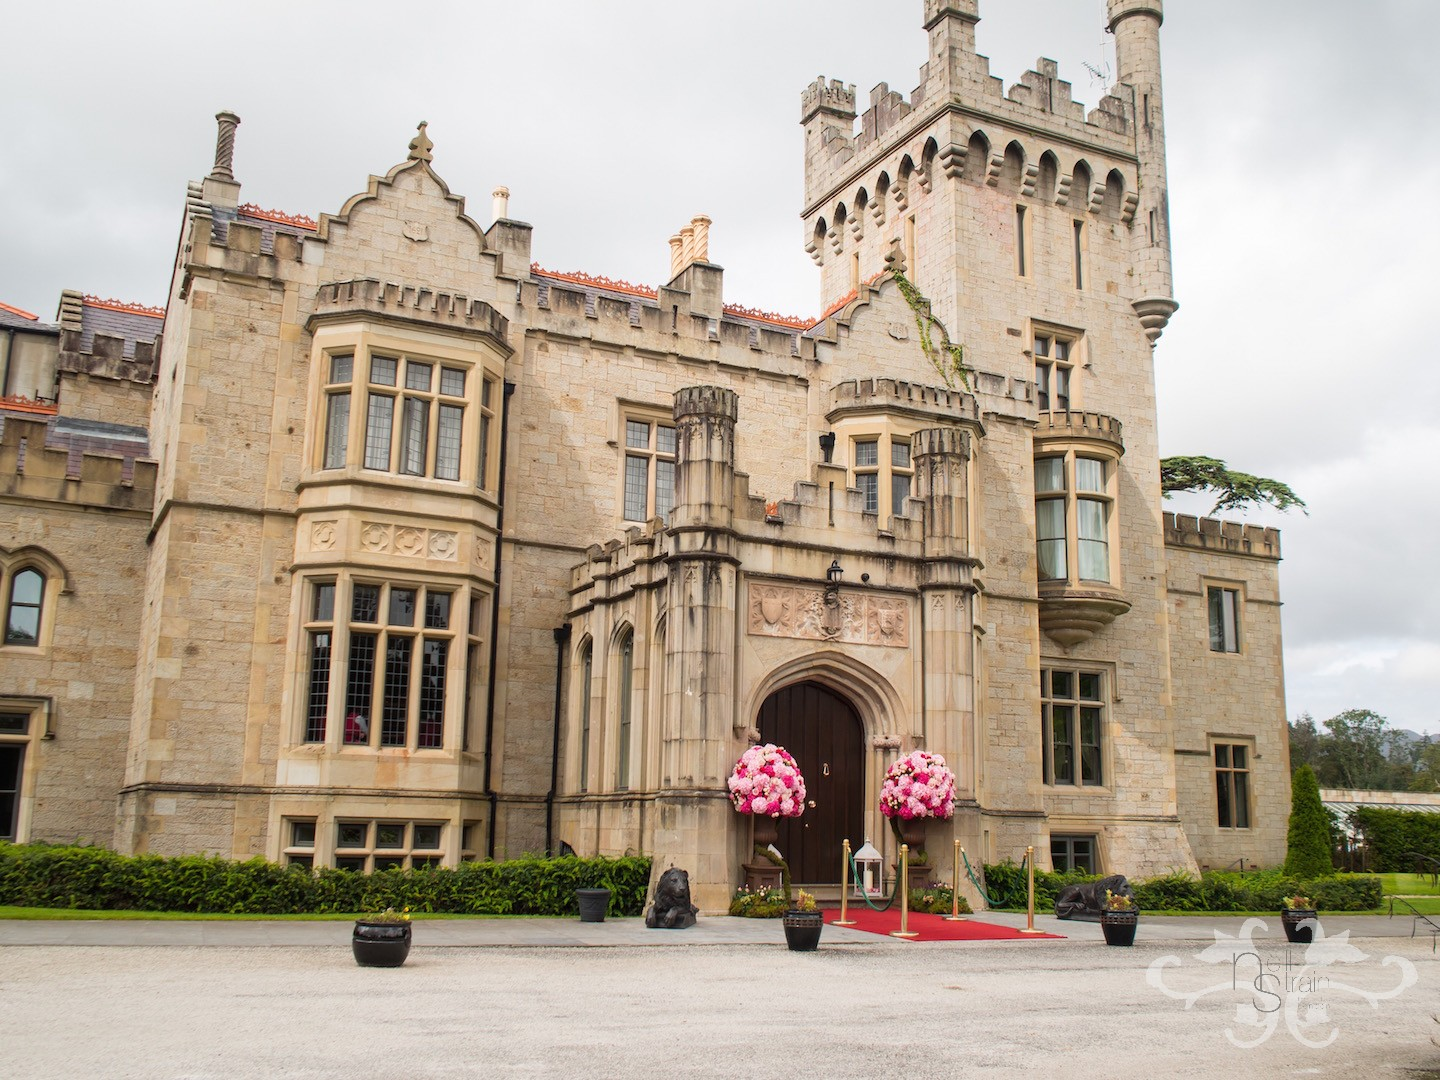 Lough Eske Castle in Ireland. The perfect setting for a fairytale wedding.